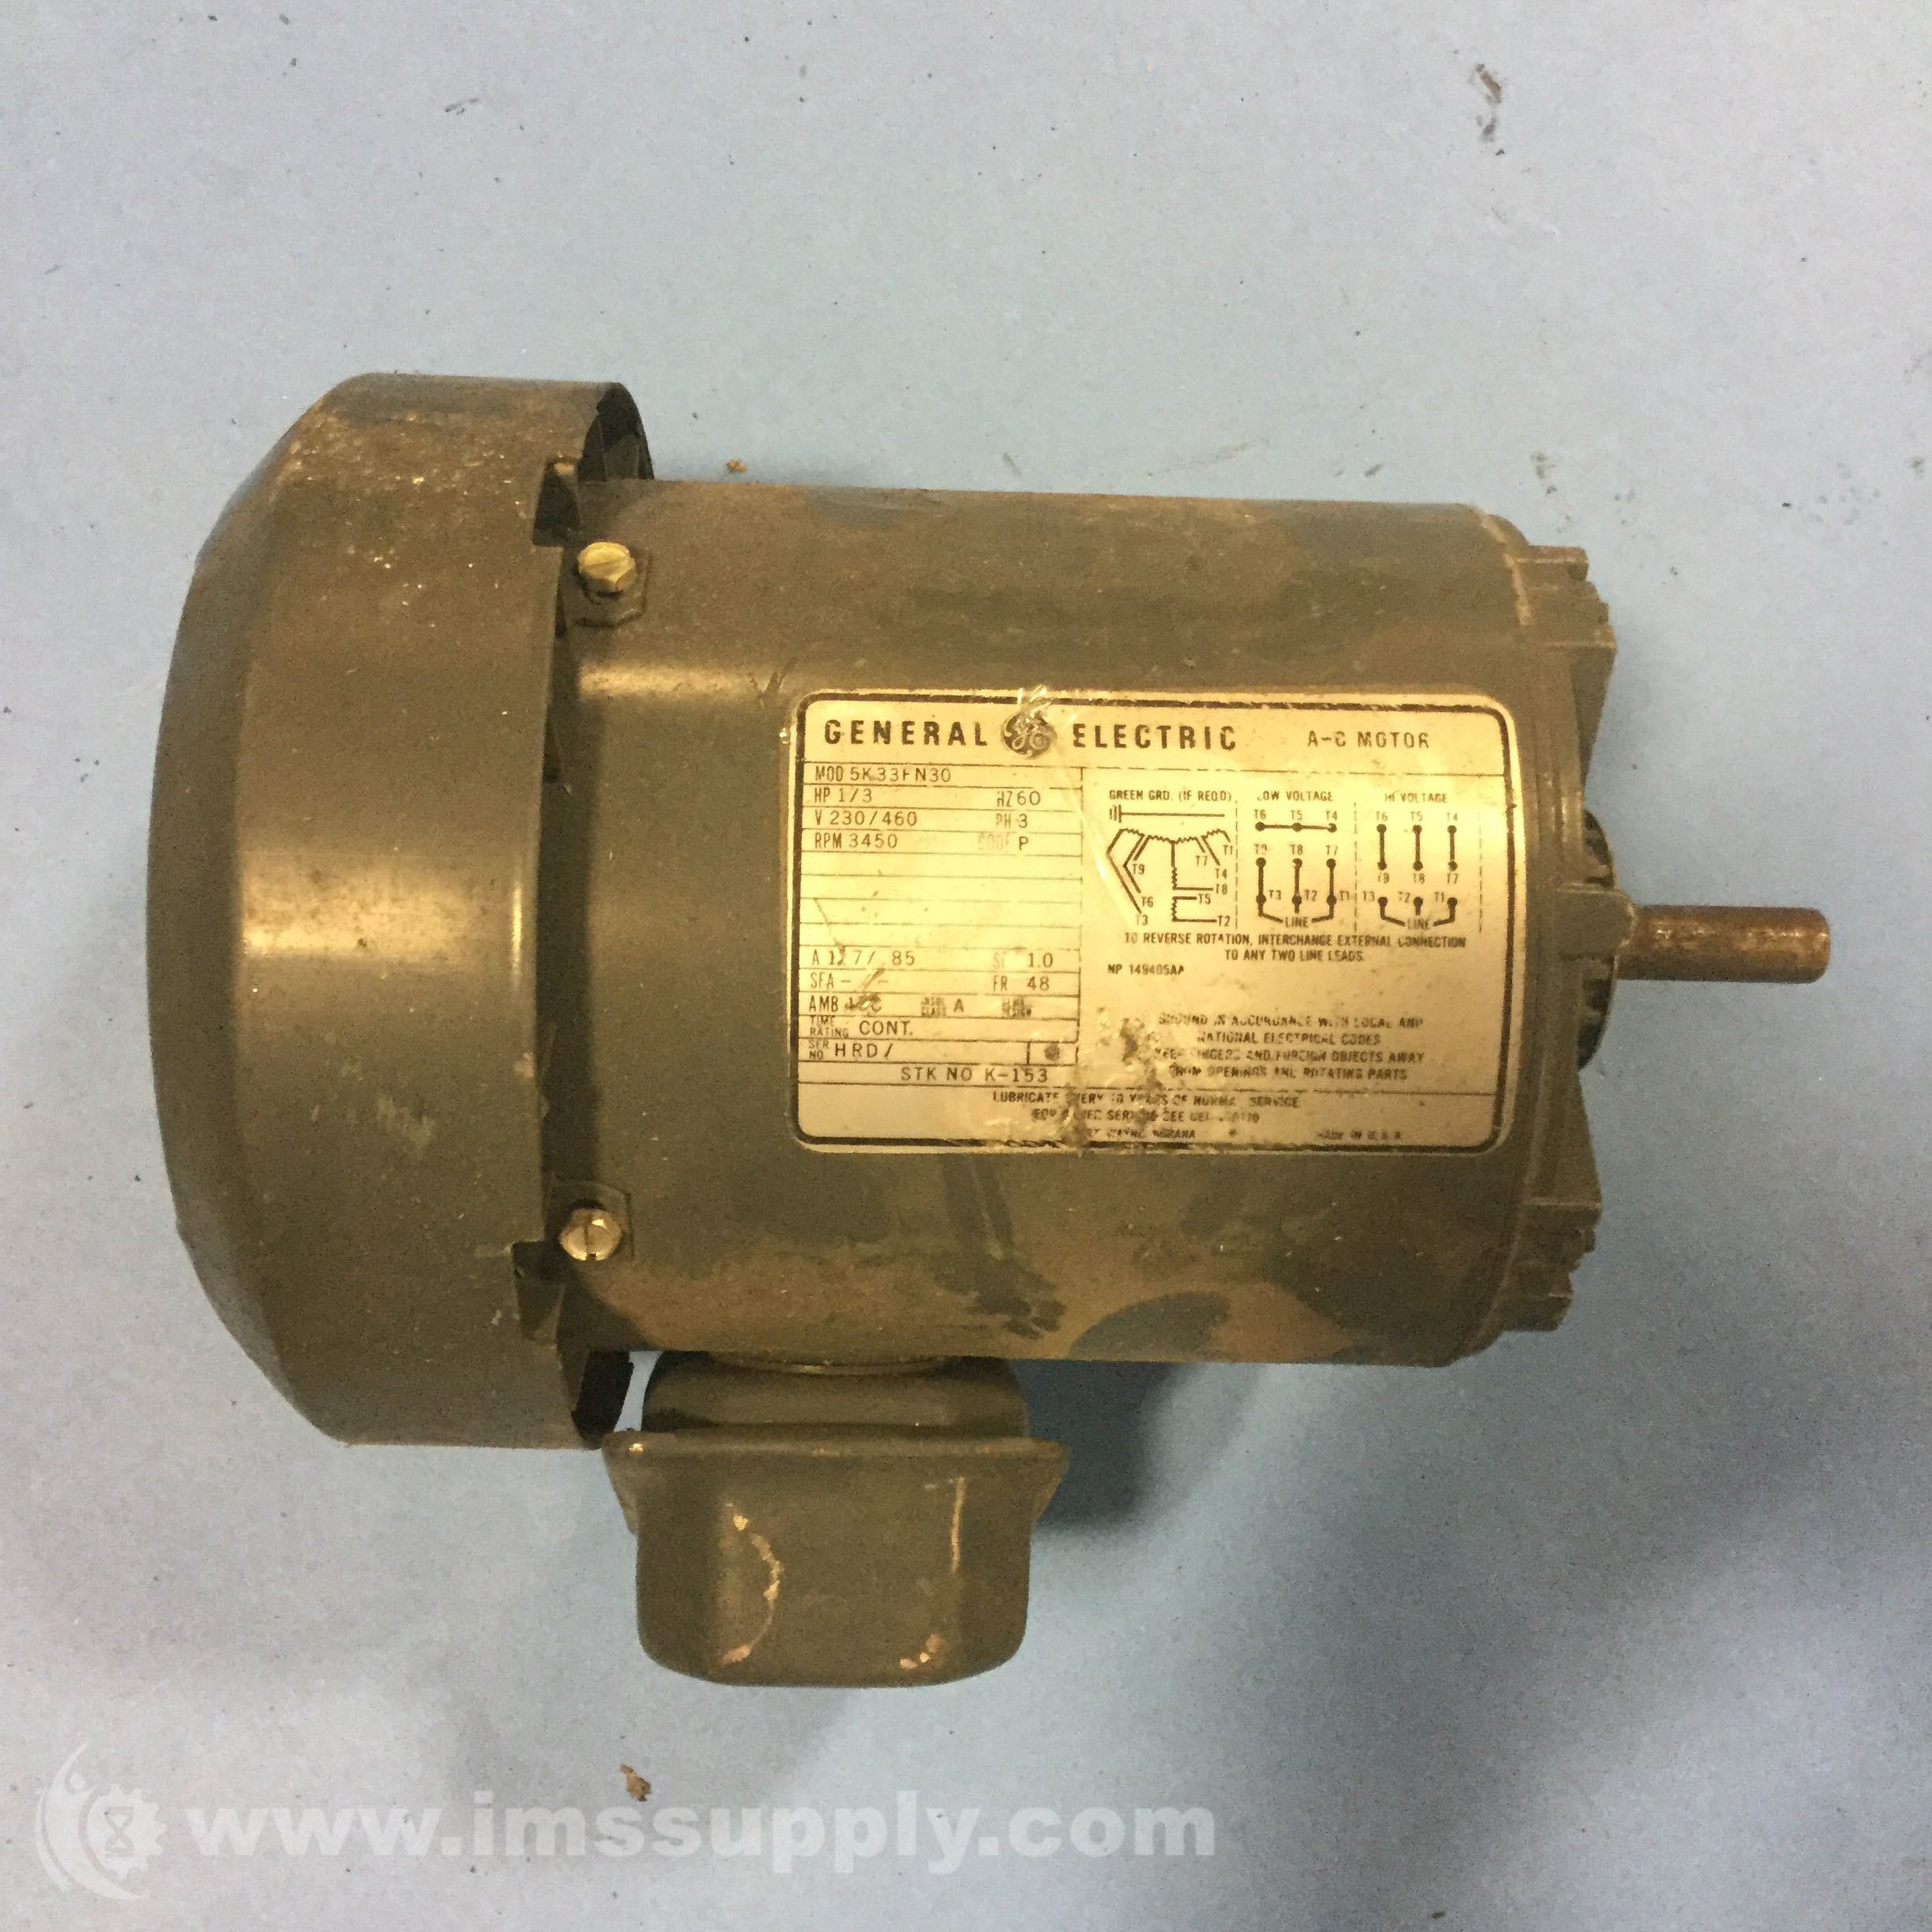 General electric 5k33fn30 motor ims supply for Ge electric motors catalog